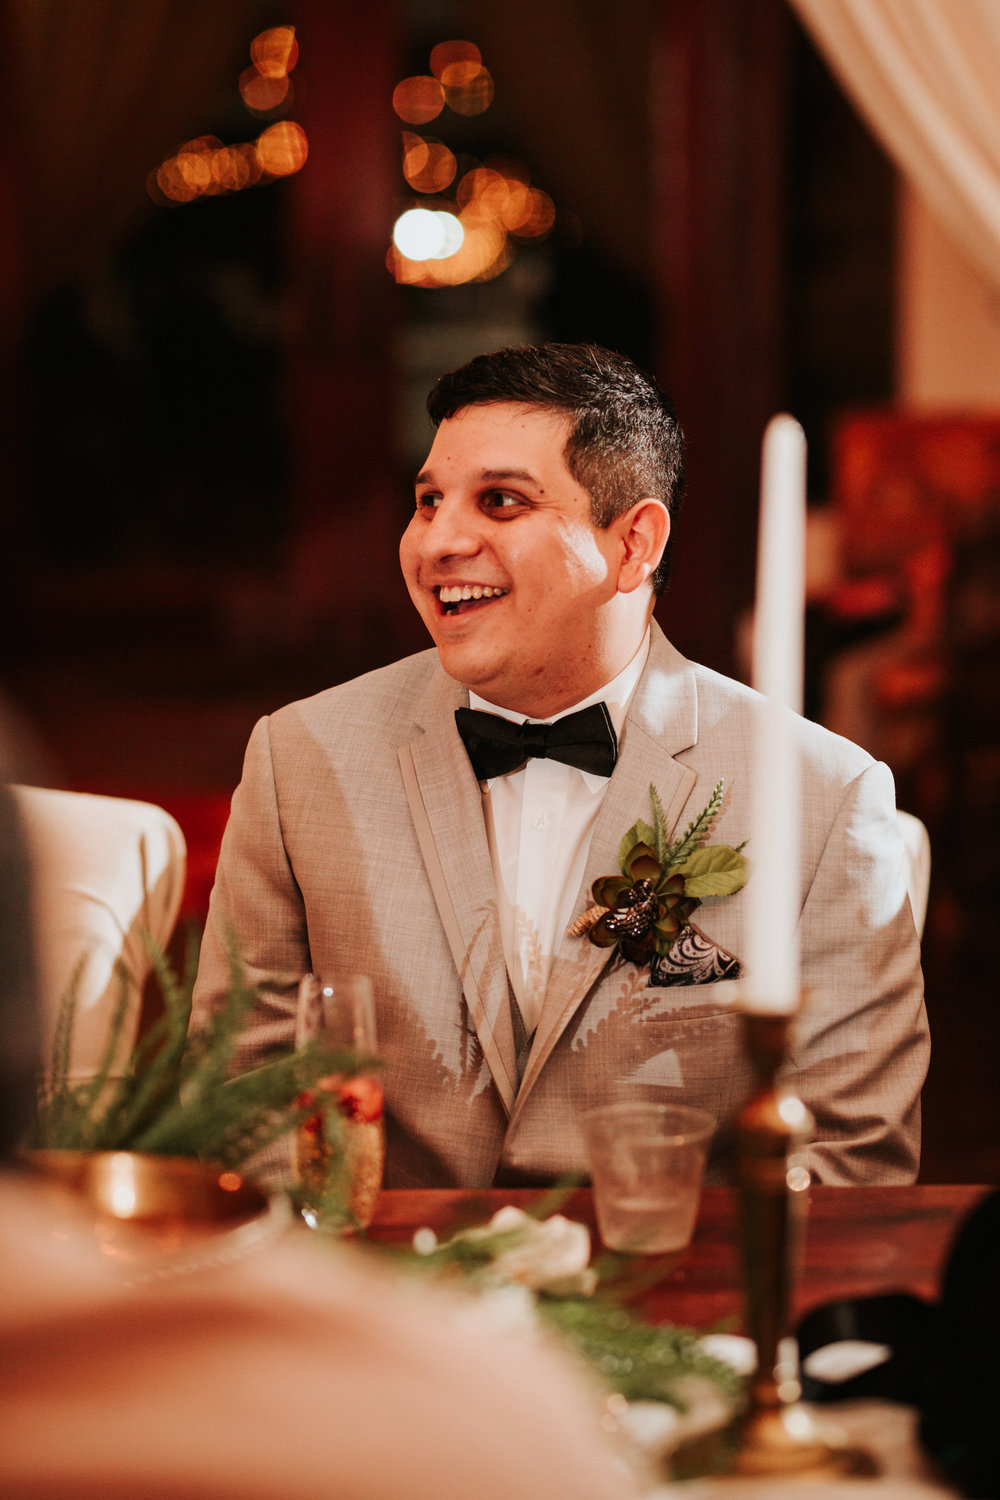 Groom at Pecan Springs Ranch wedding reception